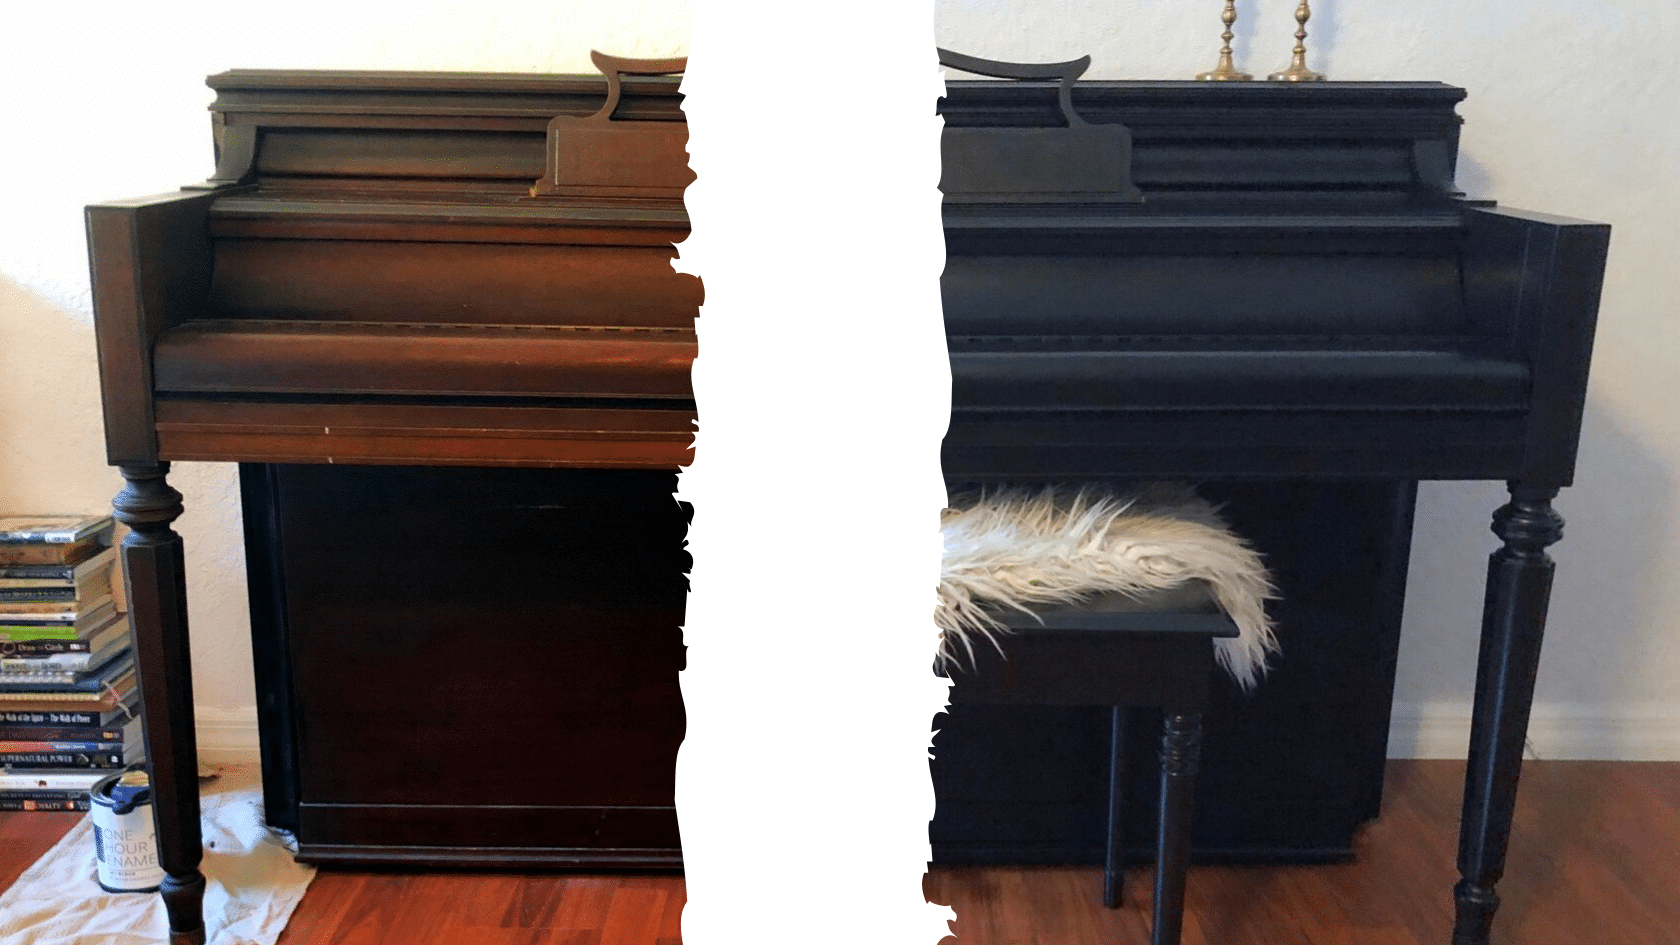 Painting a Piano